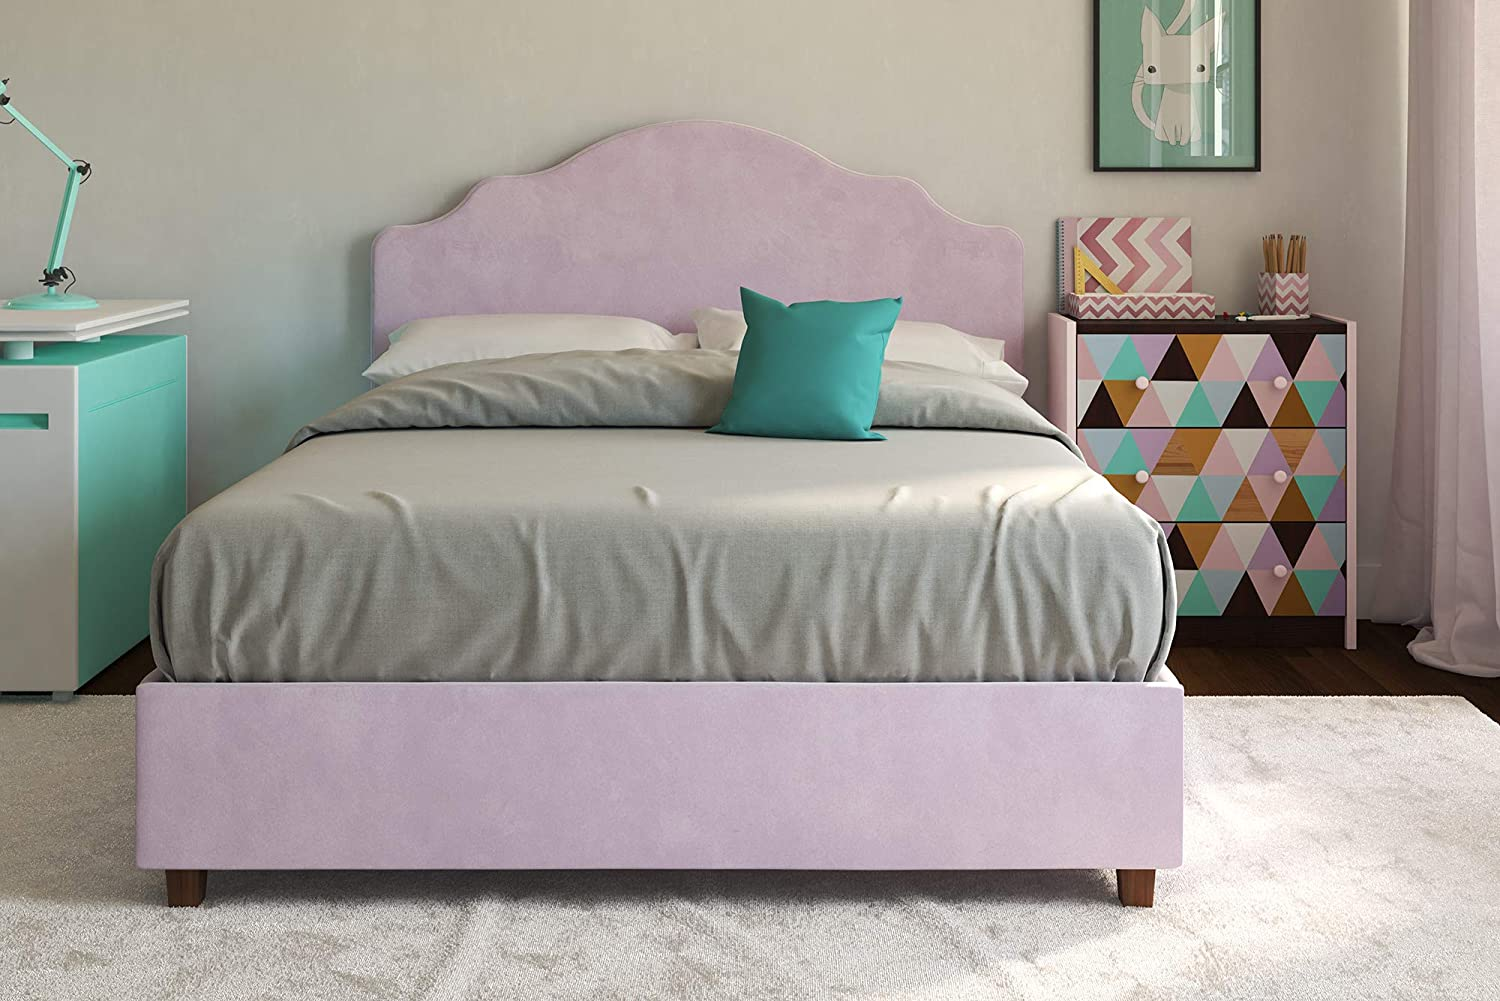 DHP Savannah Upholstered Platform Bed, Lilac, Full